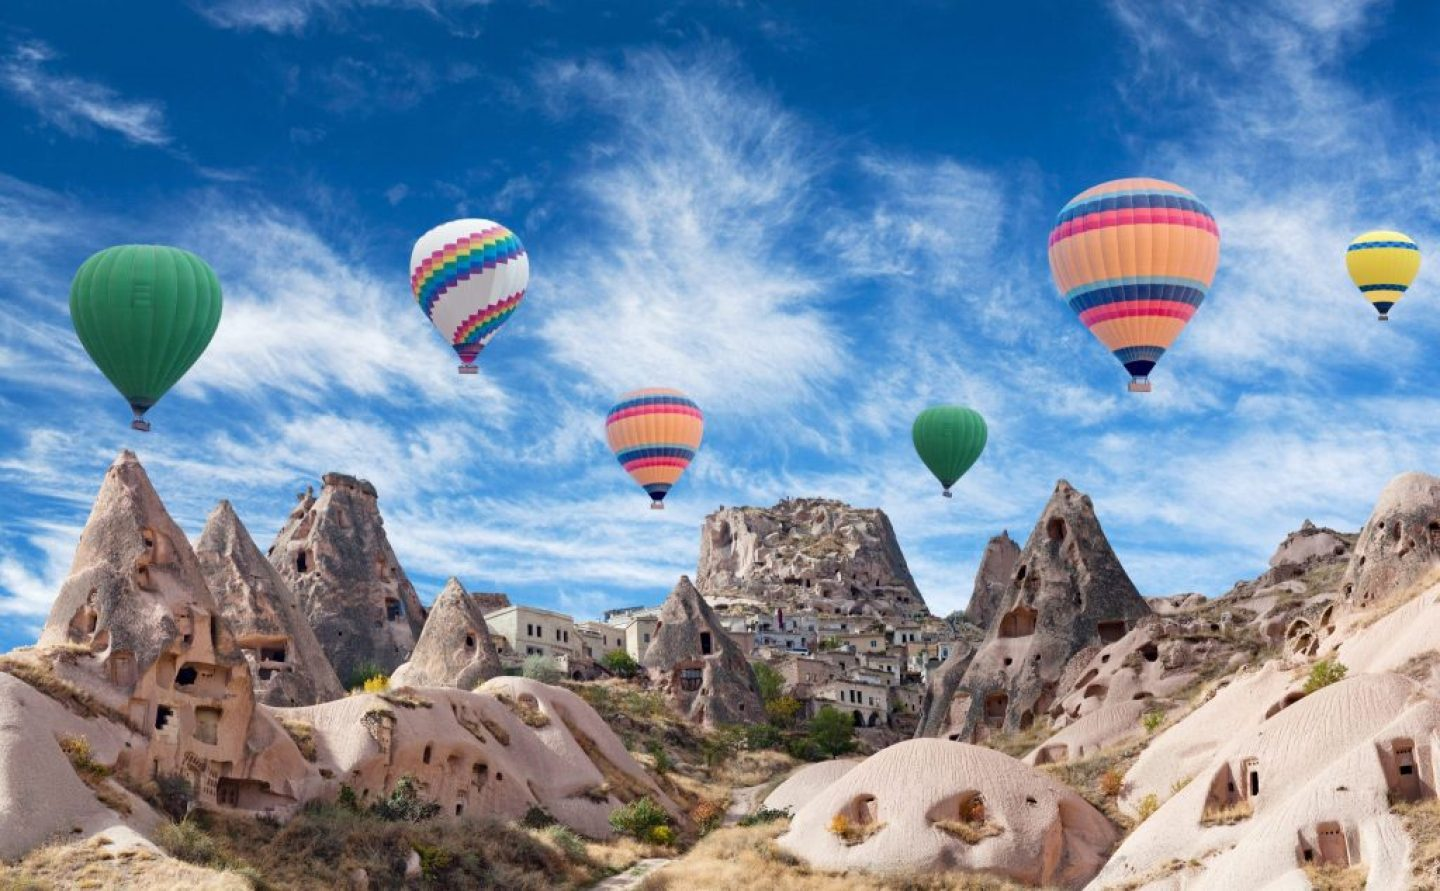 Cappadocia Hot Air Balloon Ride: Bucket List Ballooning